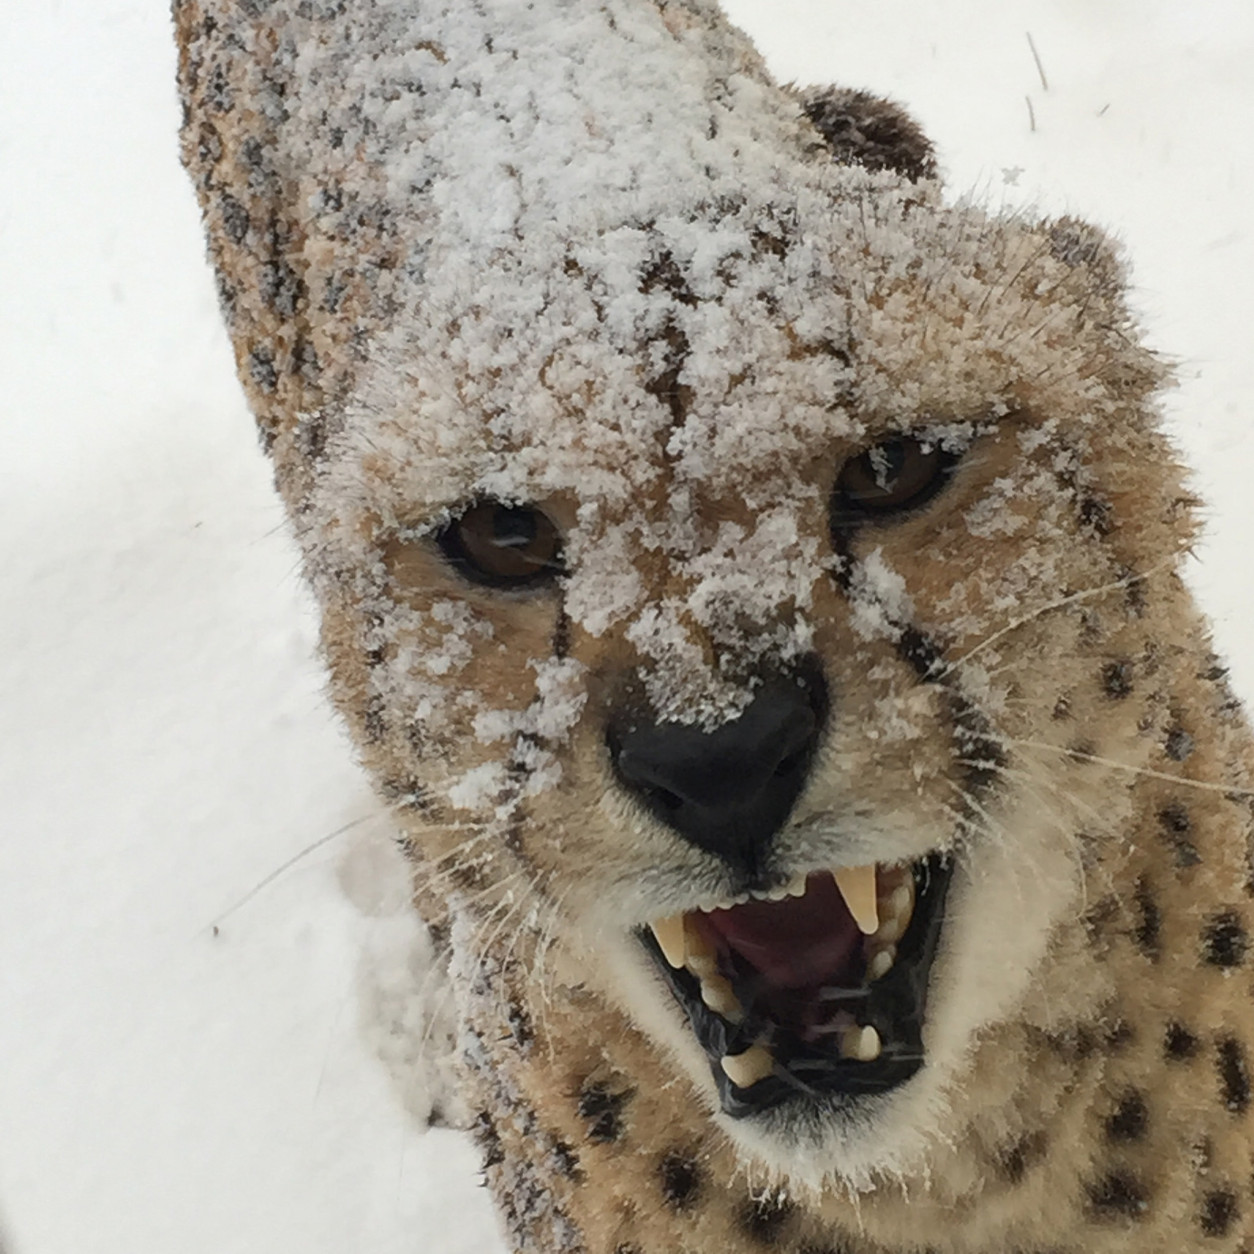 This National Zoo cheetah shares its feelings about the snow. (Courtesy National Zoo)